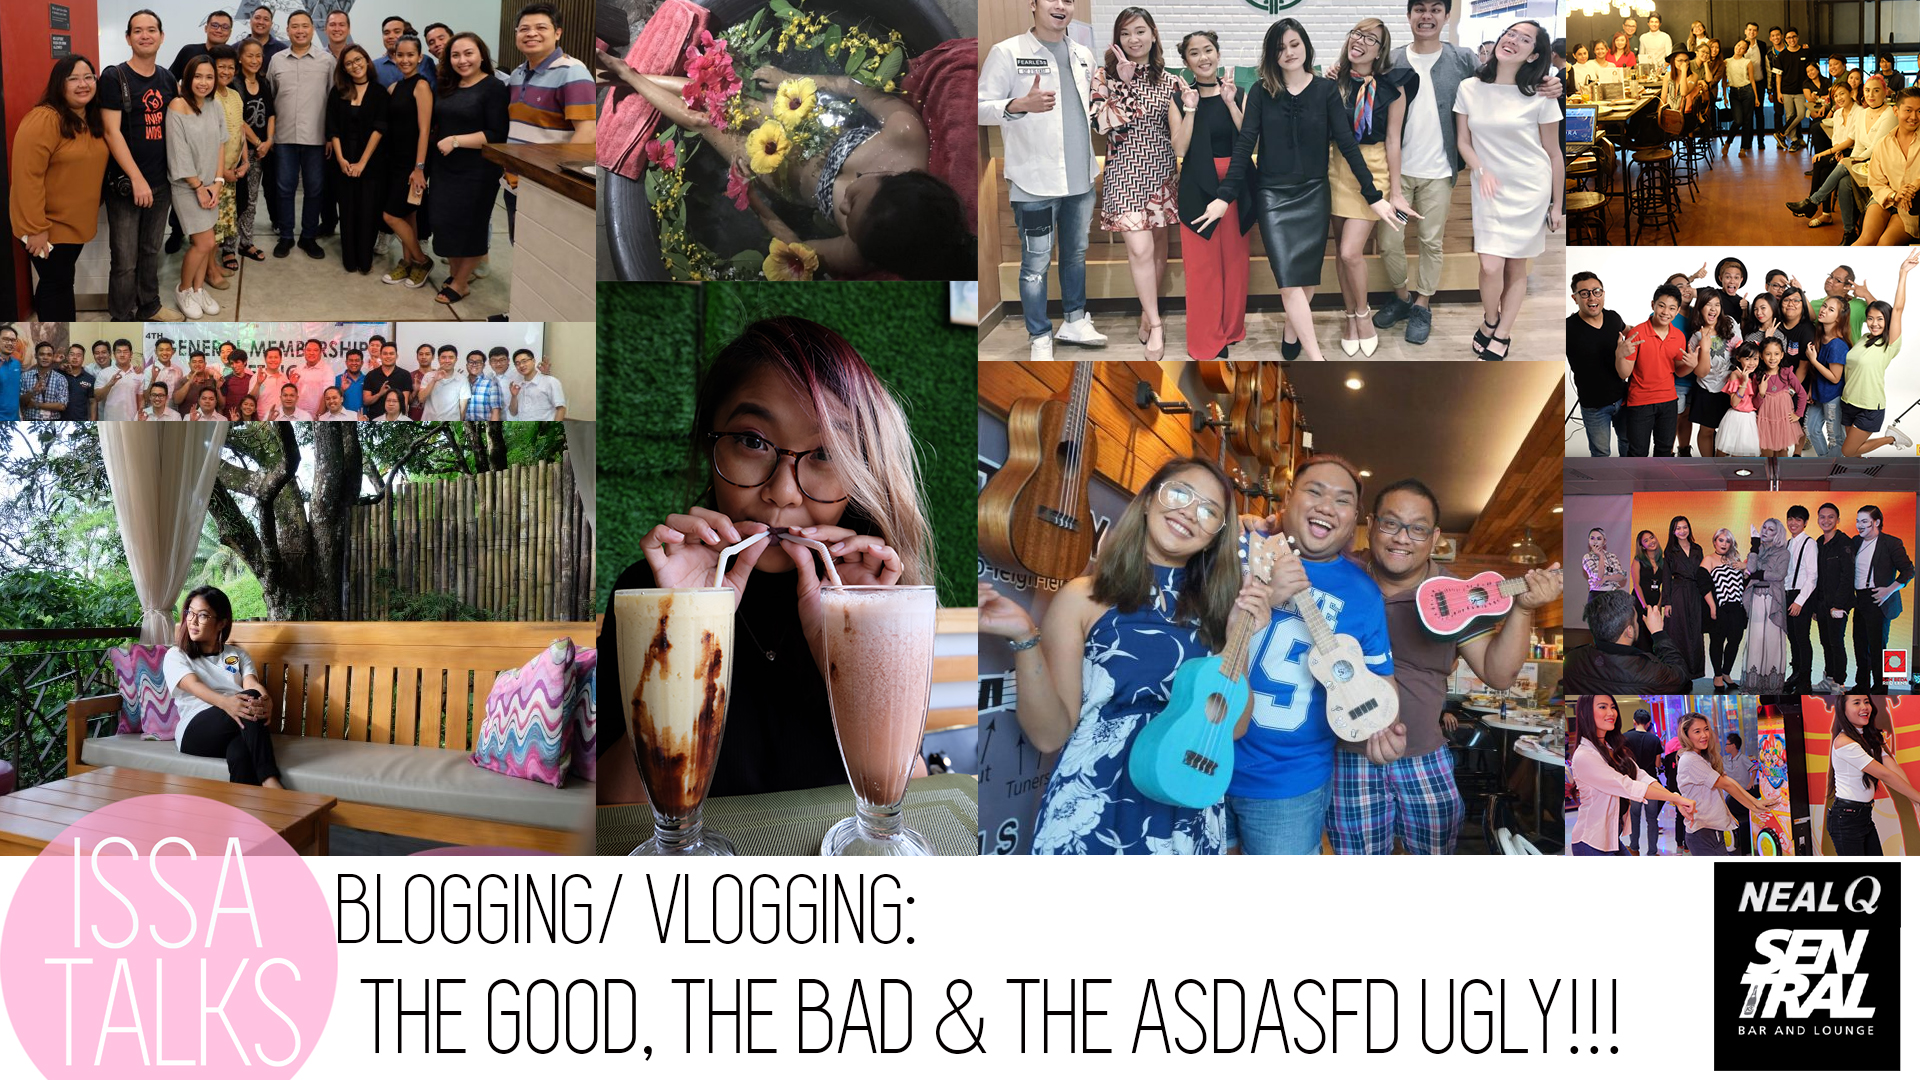 [VLOG] IssaTalks Episodes 6 & 7: The Truth About Blogging/ Vlogging/ Social Media Content Creation